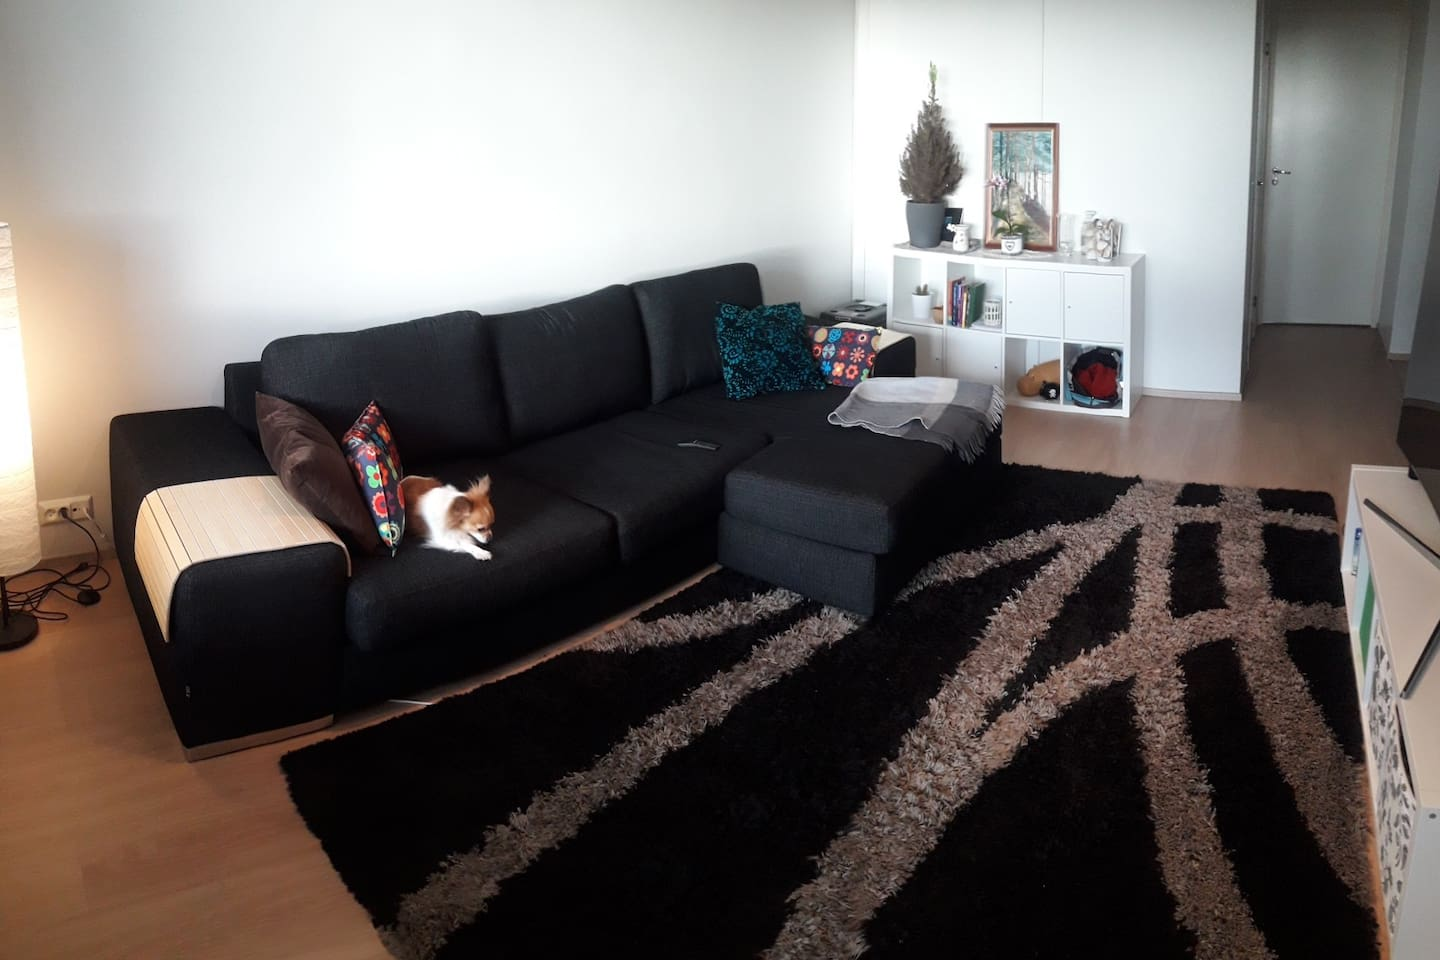 Comfy livingroom to ensure you a pleasant stay. Don't mind the dog. :)